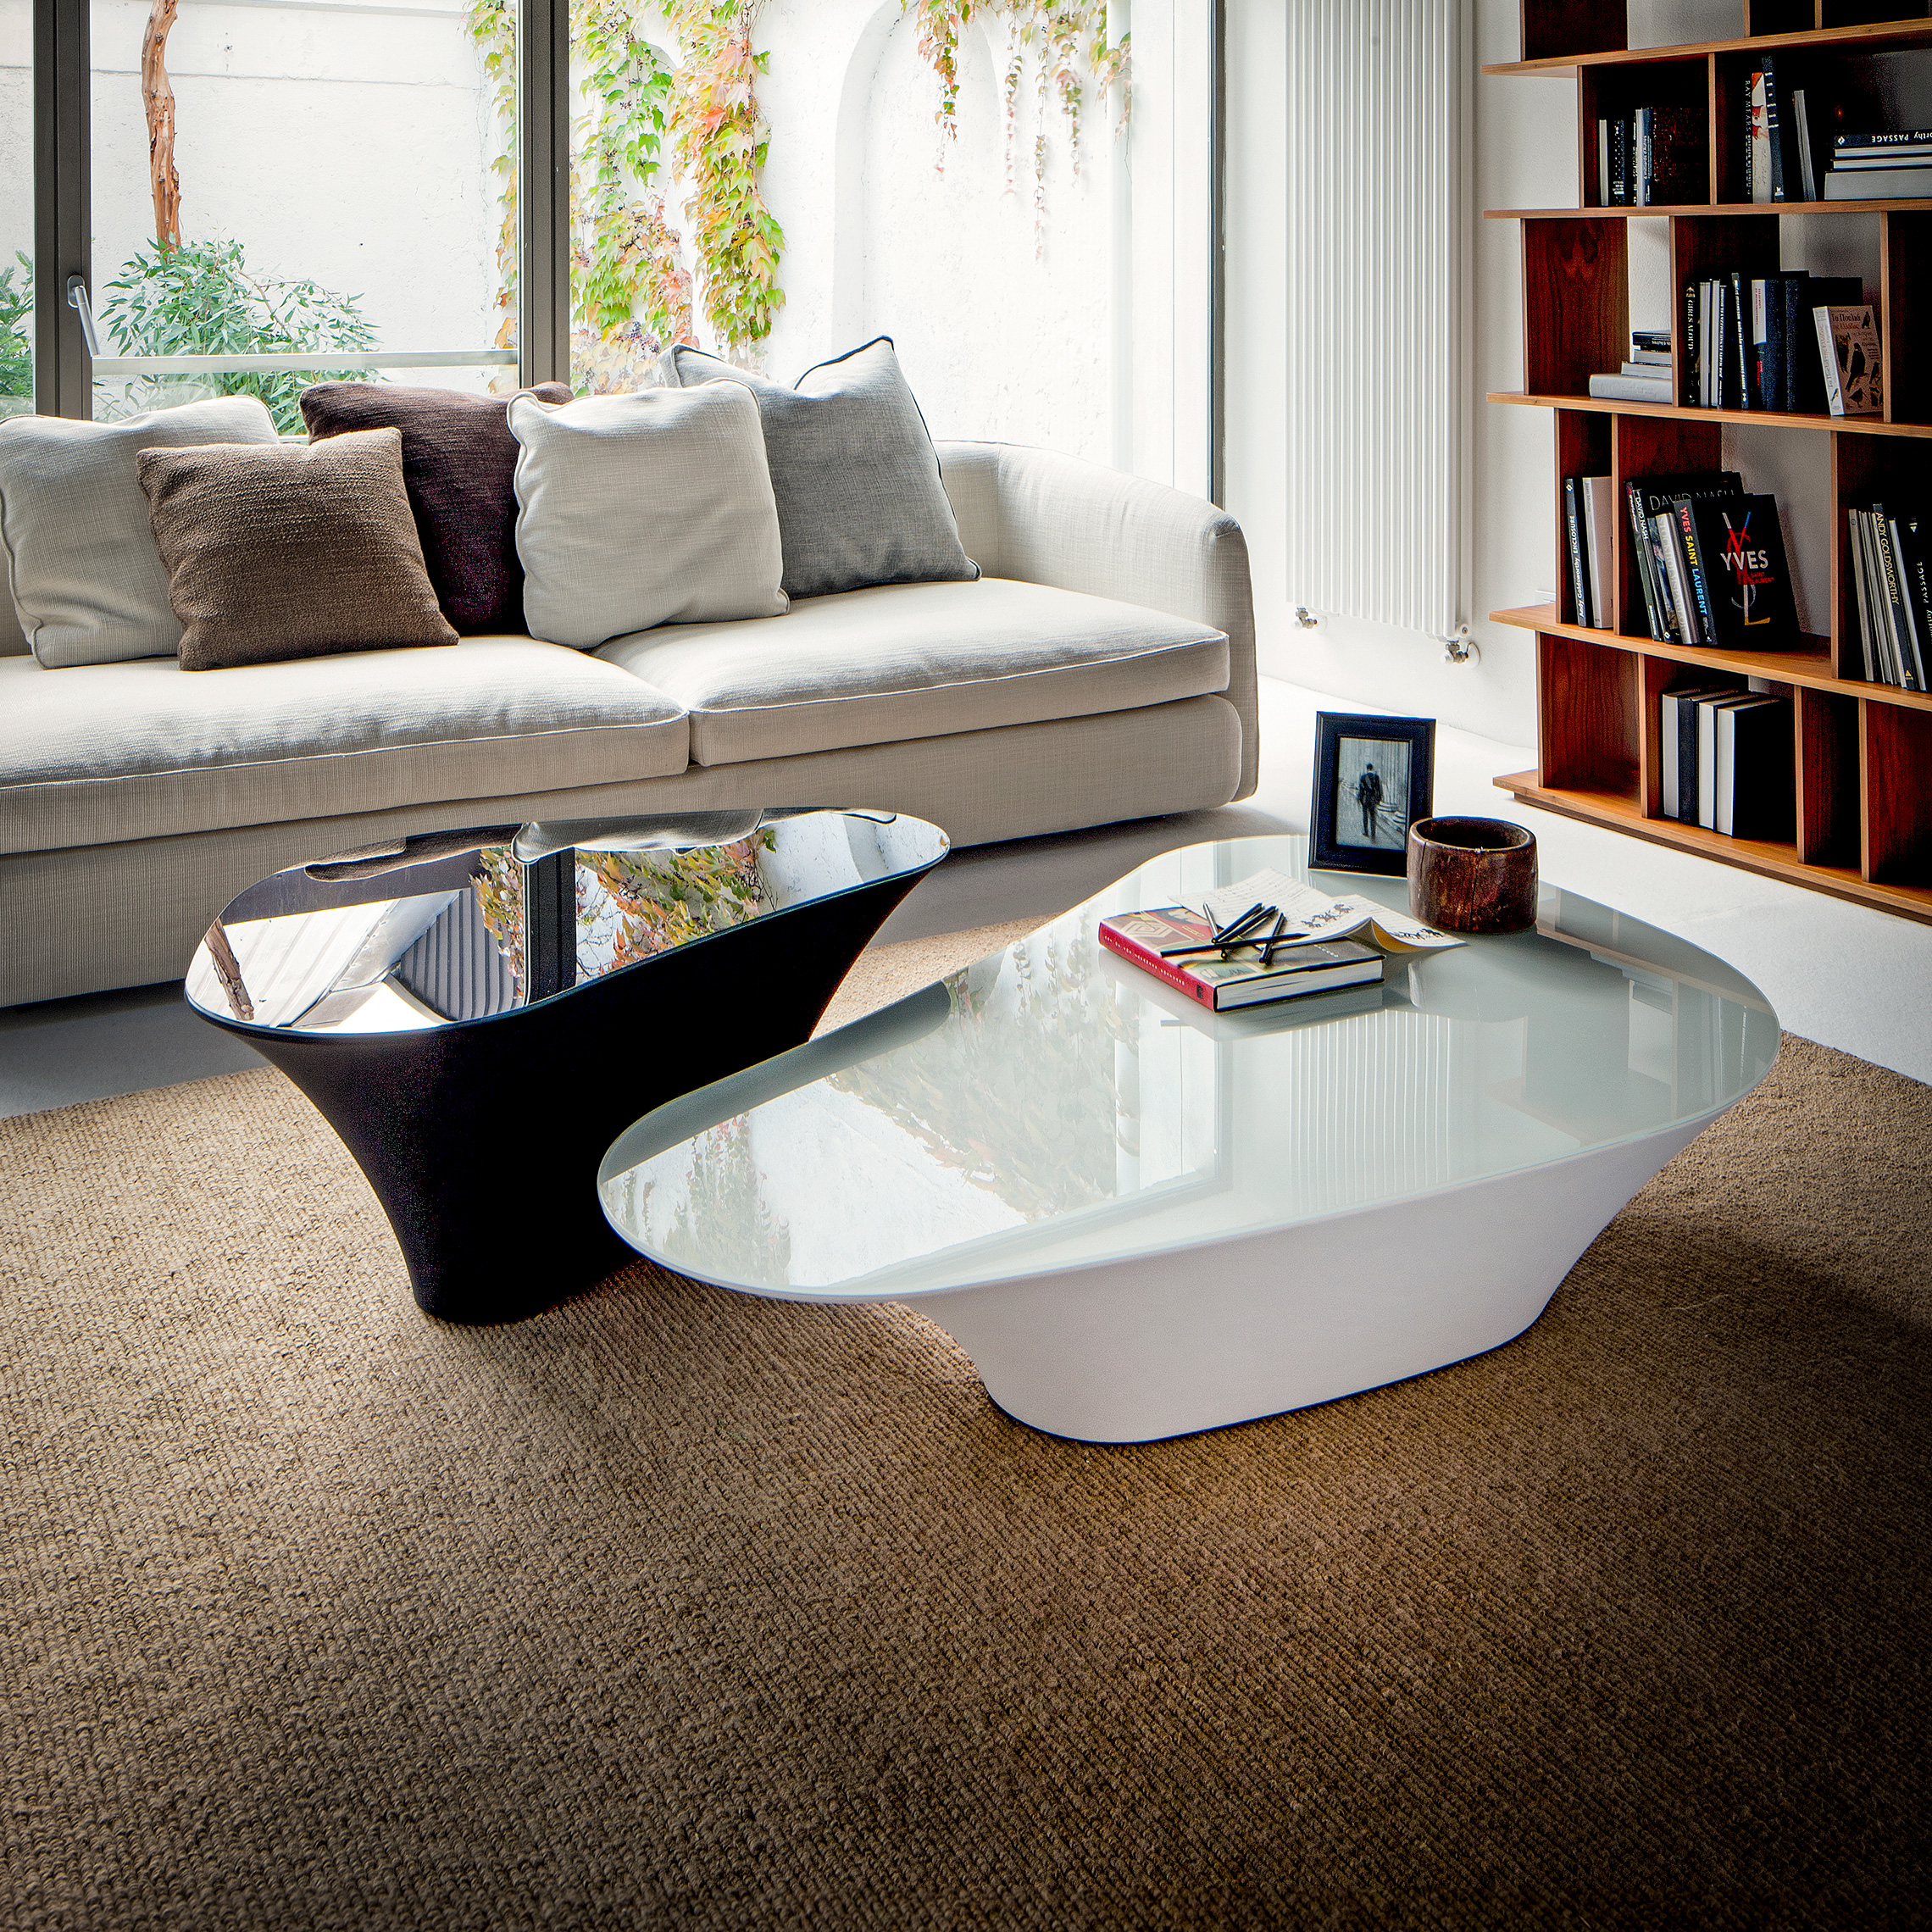 Atollo Luxury Italian Coffee Table Italian Designer & Luxury